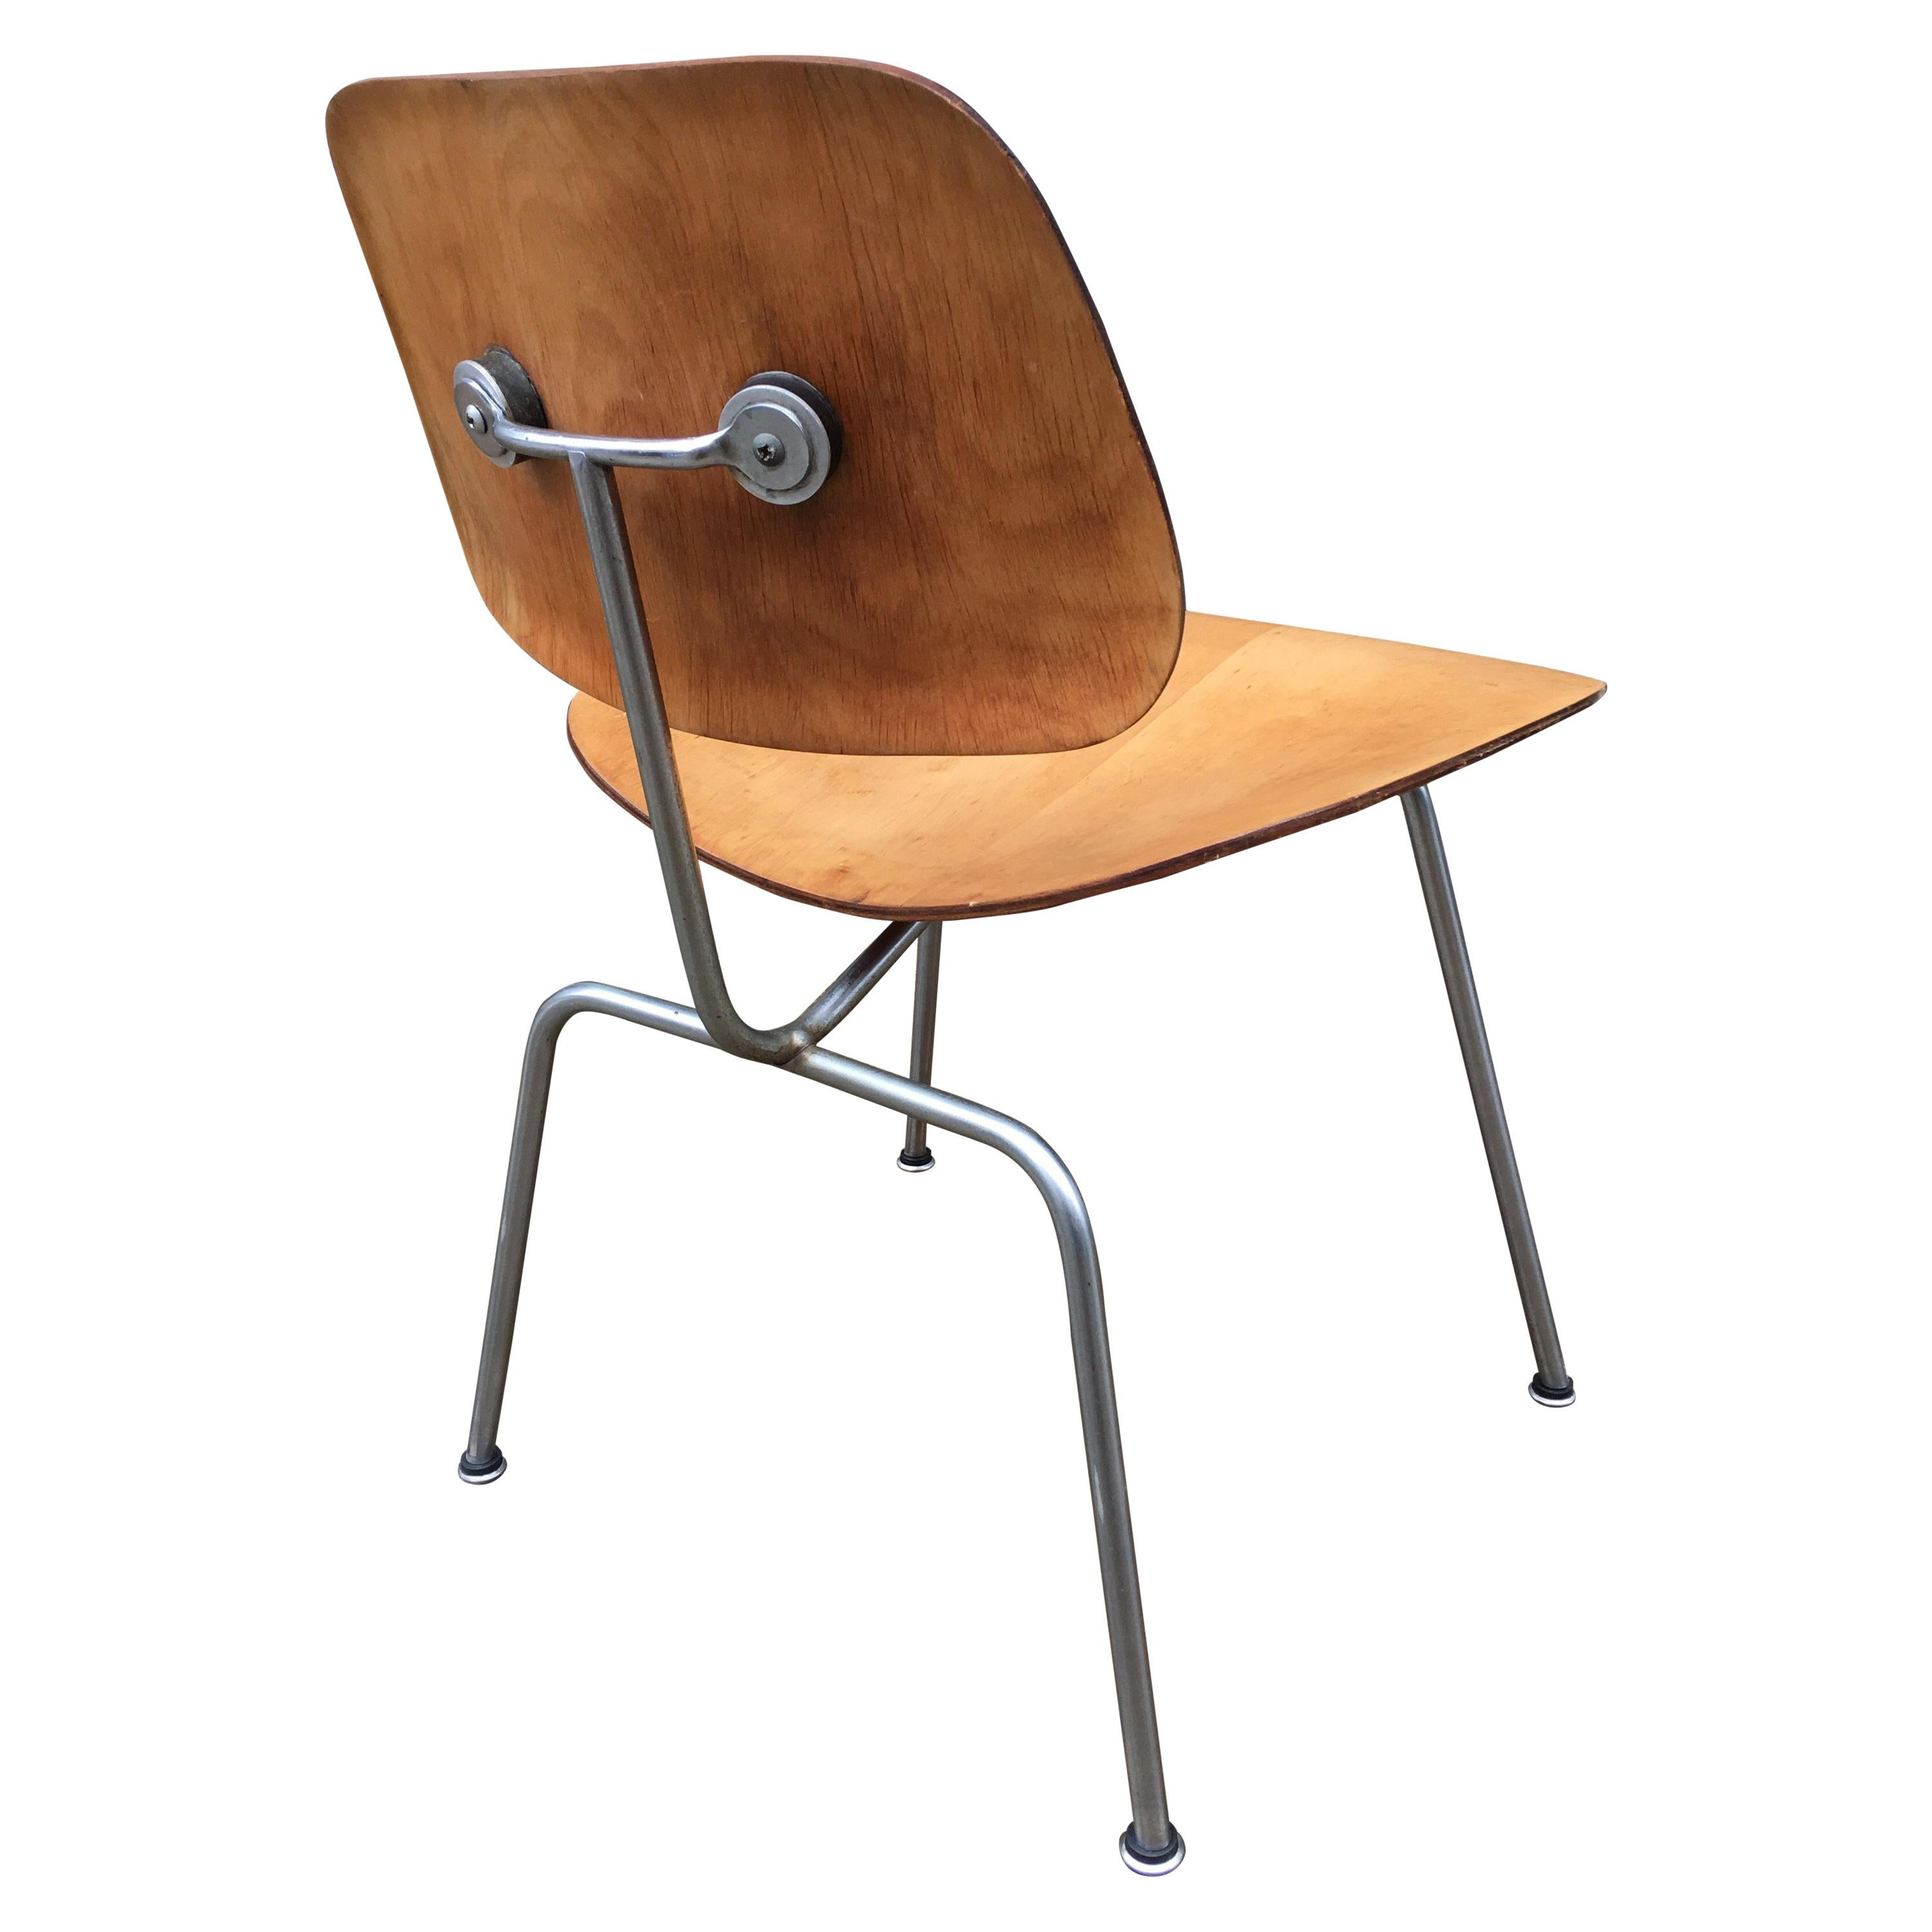 Charles and Ray Eames Pre- Production DCM Evans Production Chair